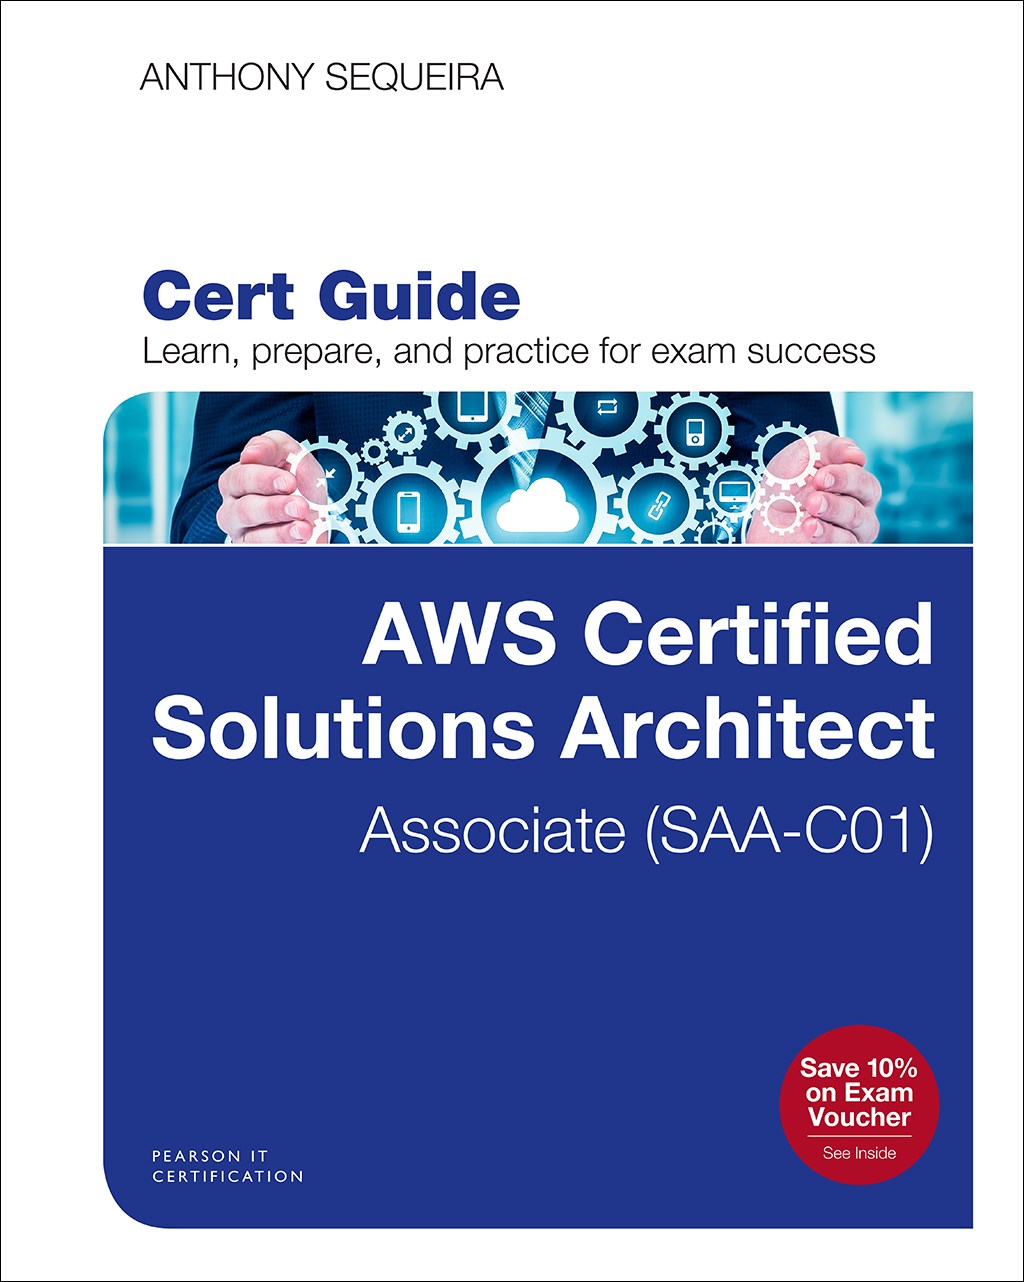 AWS Certified Solutions Architect - Associate (SAA-C01) Cert Guide